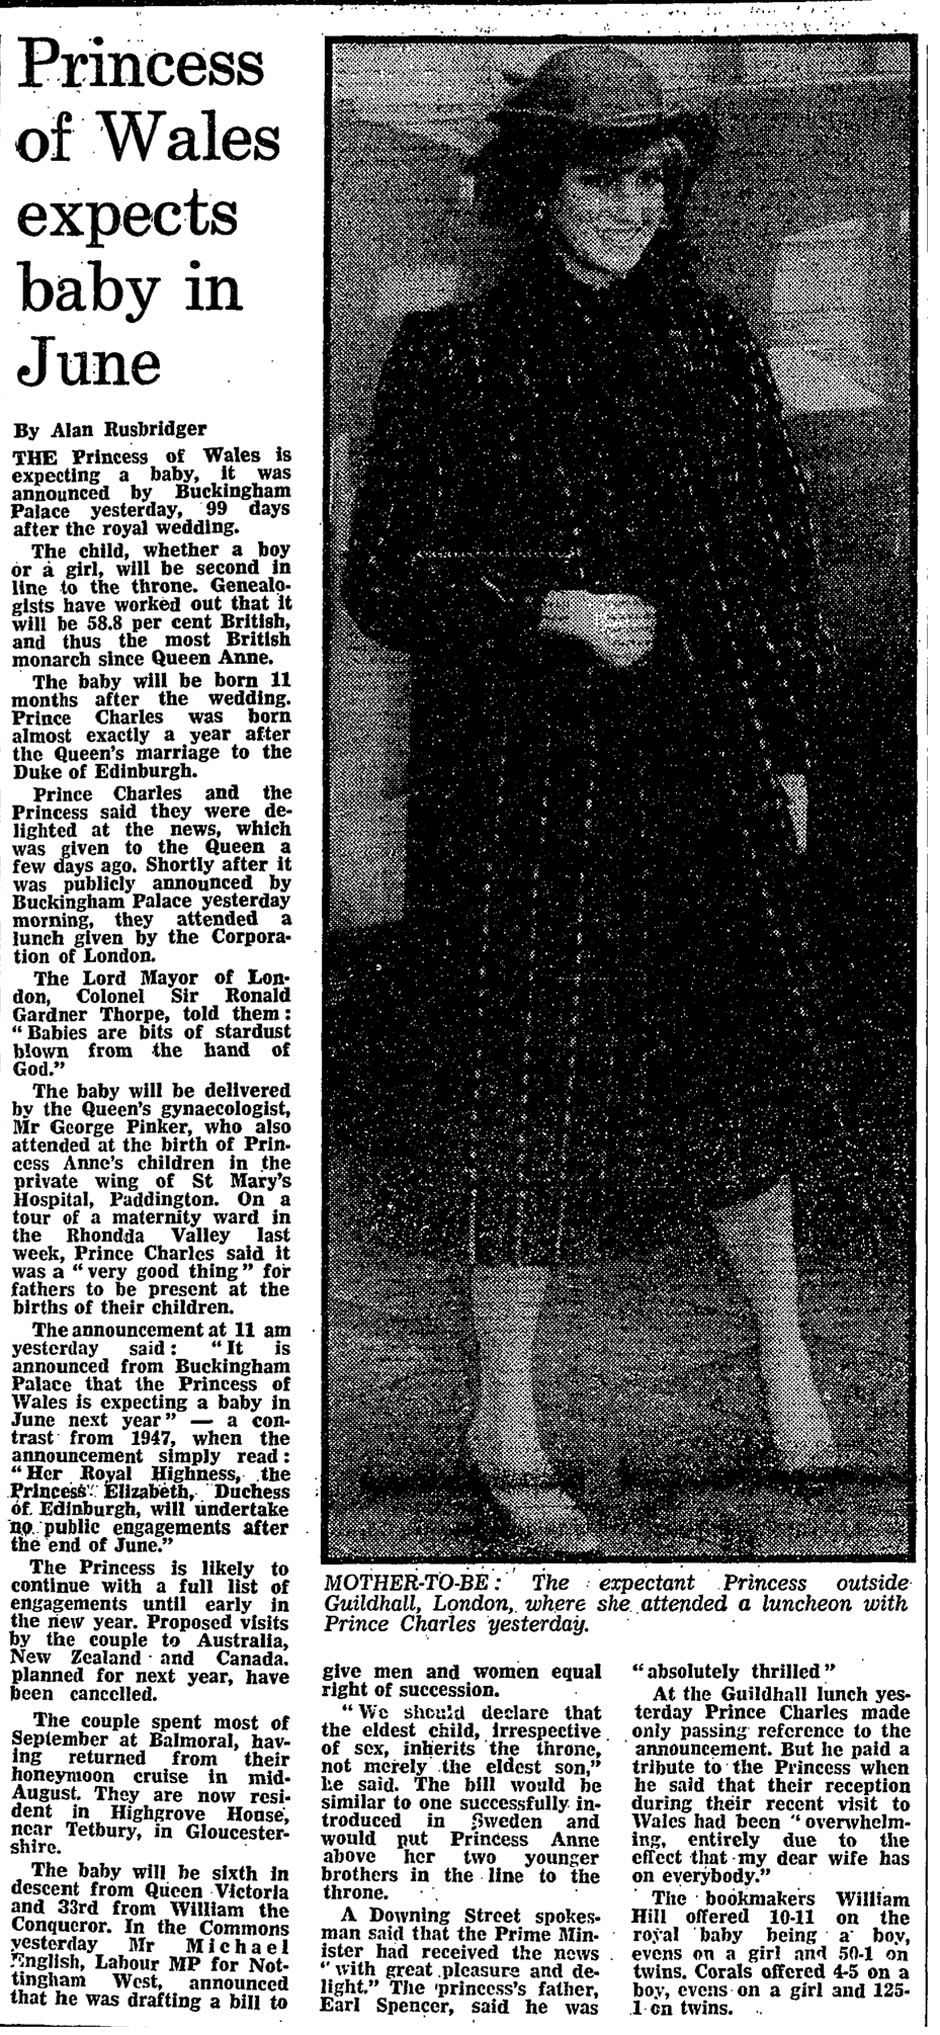 The Guardian's research department send this image of the paper's front page story from 1981 on Princess Diana's pregnancy announcement.